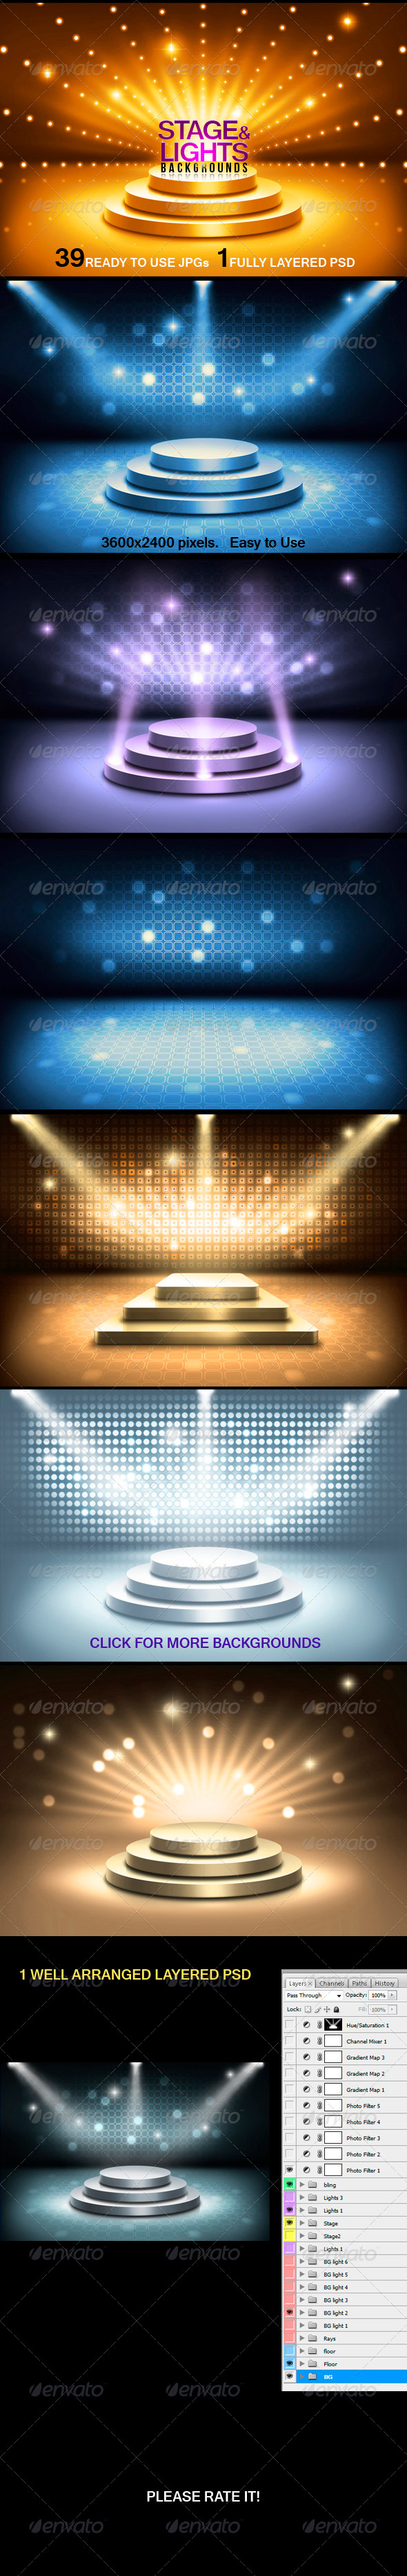 Stage and Lights Backgrounds - 3D Backgrounds